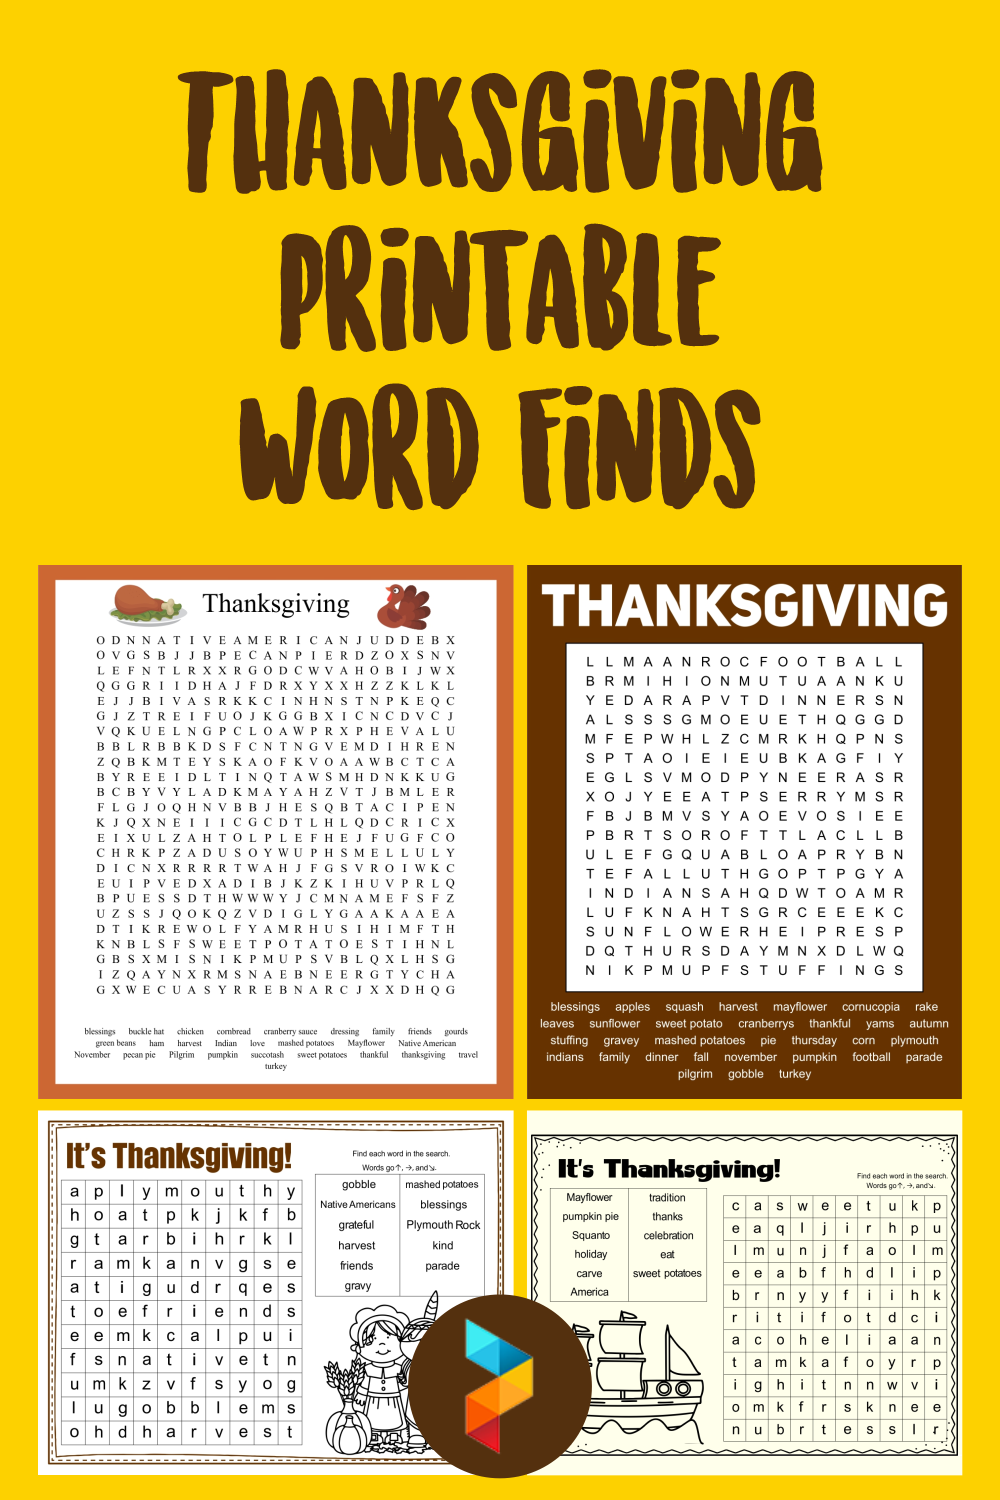 Thanksgiving Printable Word Finds